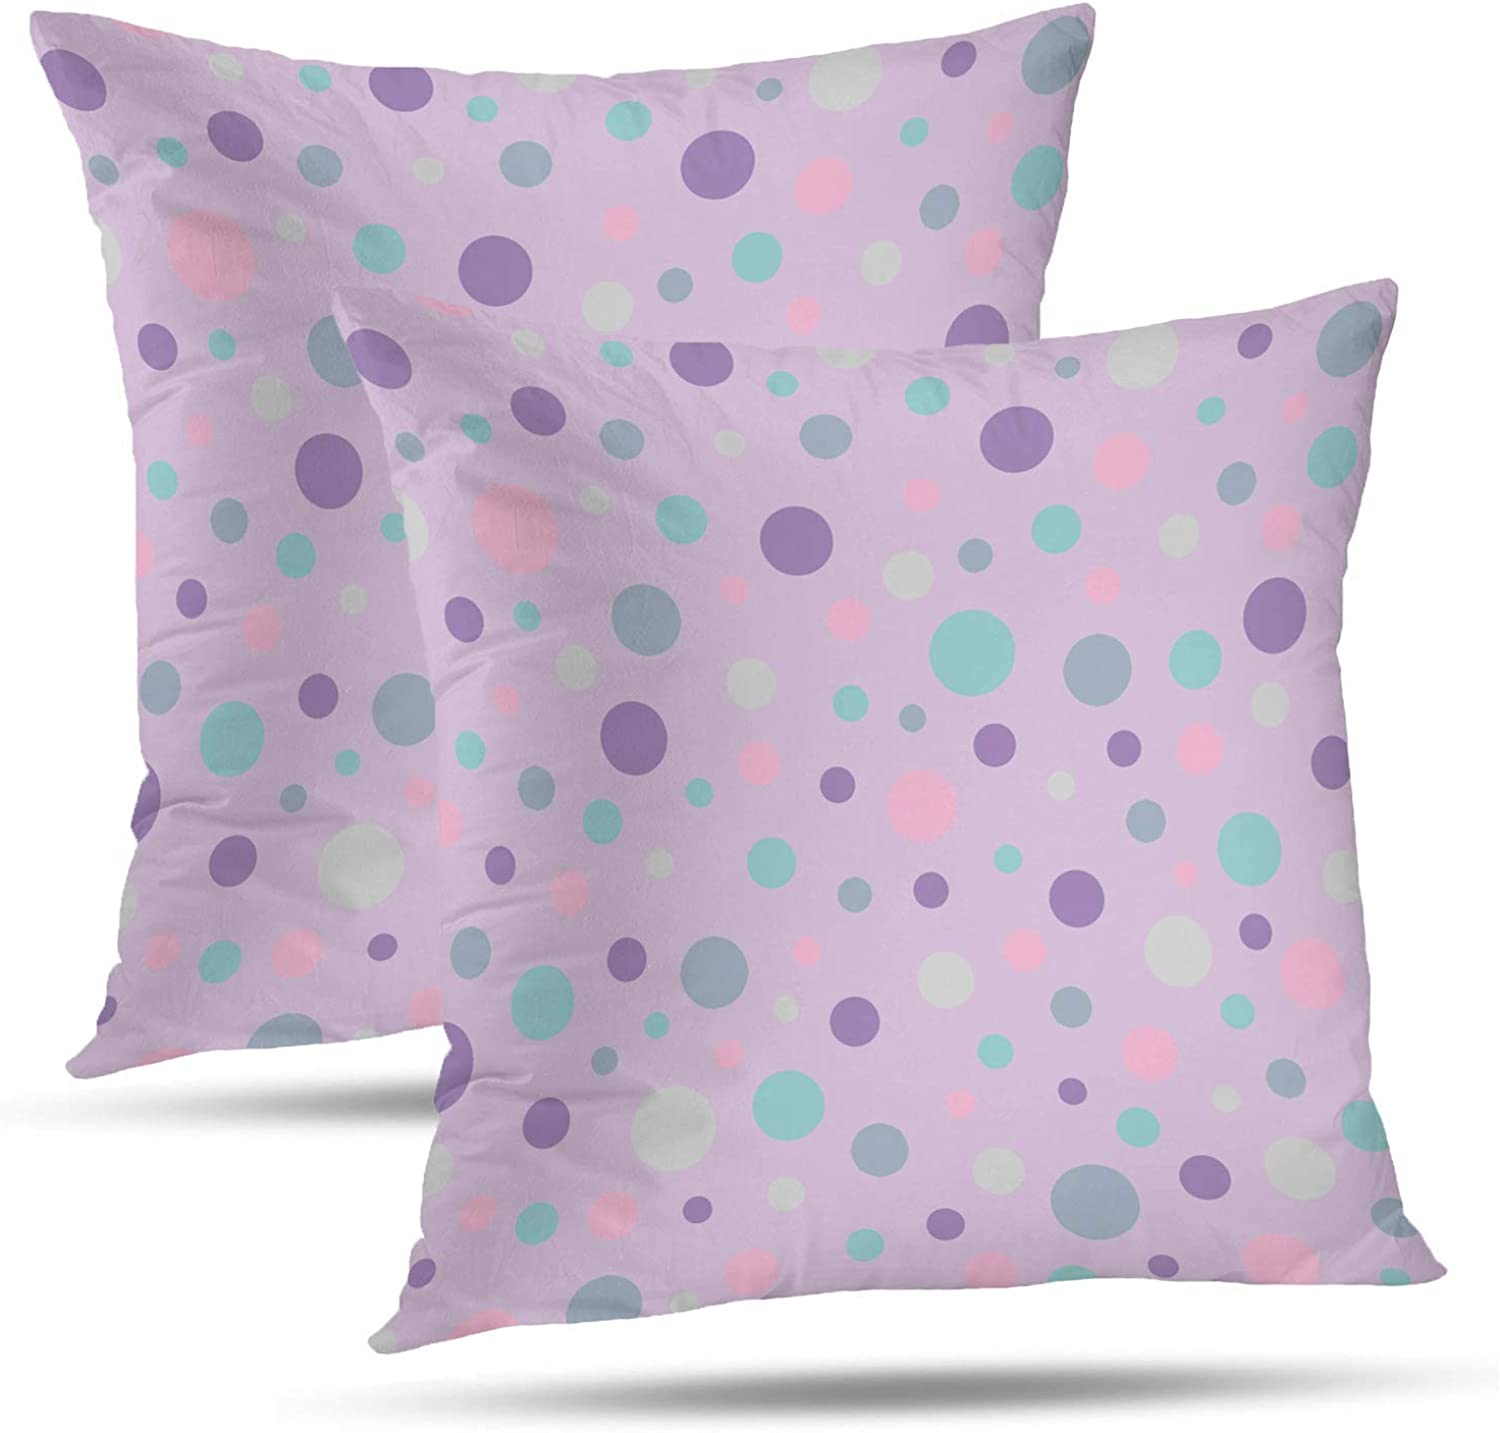 PENGTU Pillows Premium Throw Pillow Covers 18x18 Inch Set of 2, Bright Fun colorful Polka Dot Spot Pattern Double Sided Square Pillow Cases Pillowcase Sofa Cushion